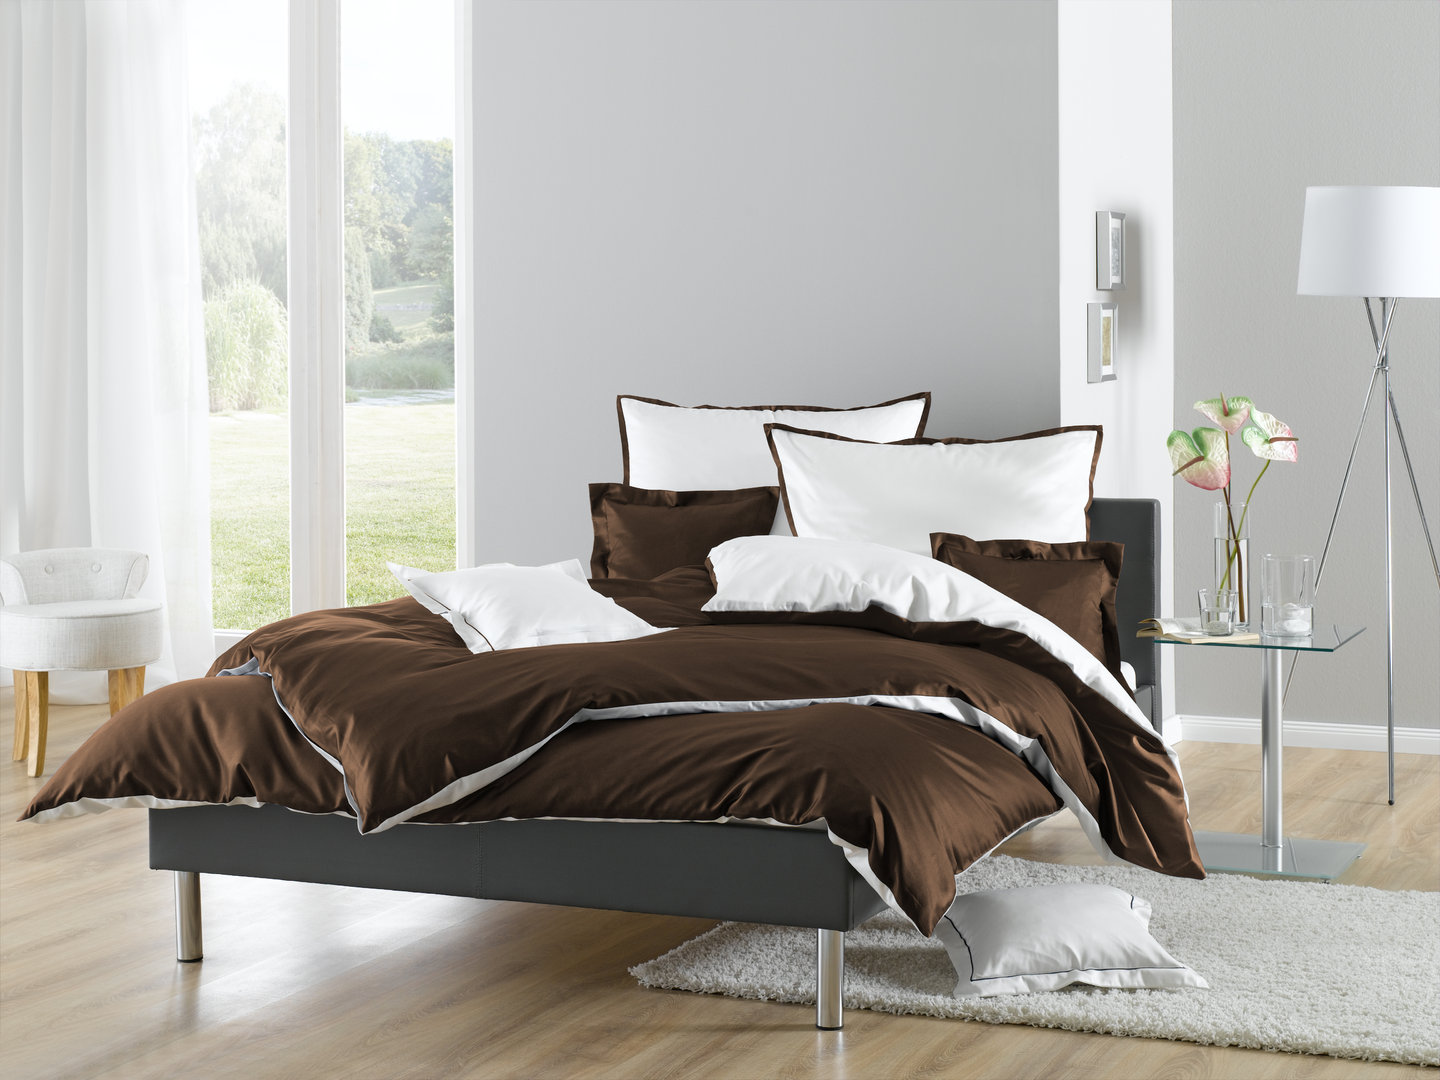 wendebettw sche mit stehsaum www wunschbettw. Black Bedroom Furniture Sets. Home Design Ideas